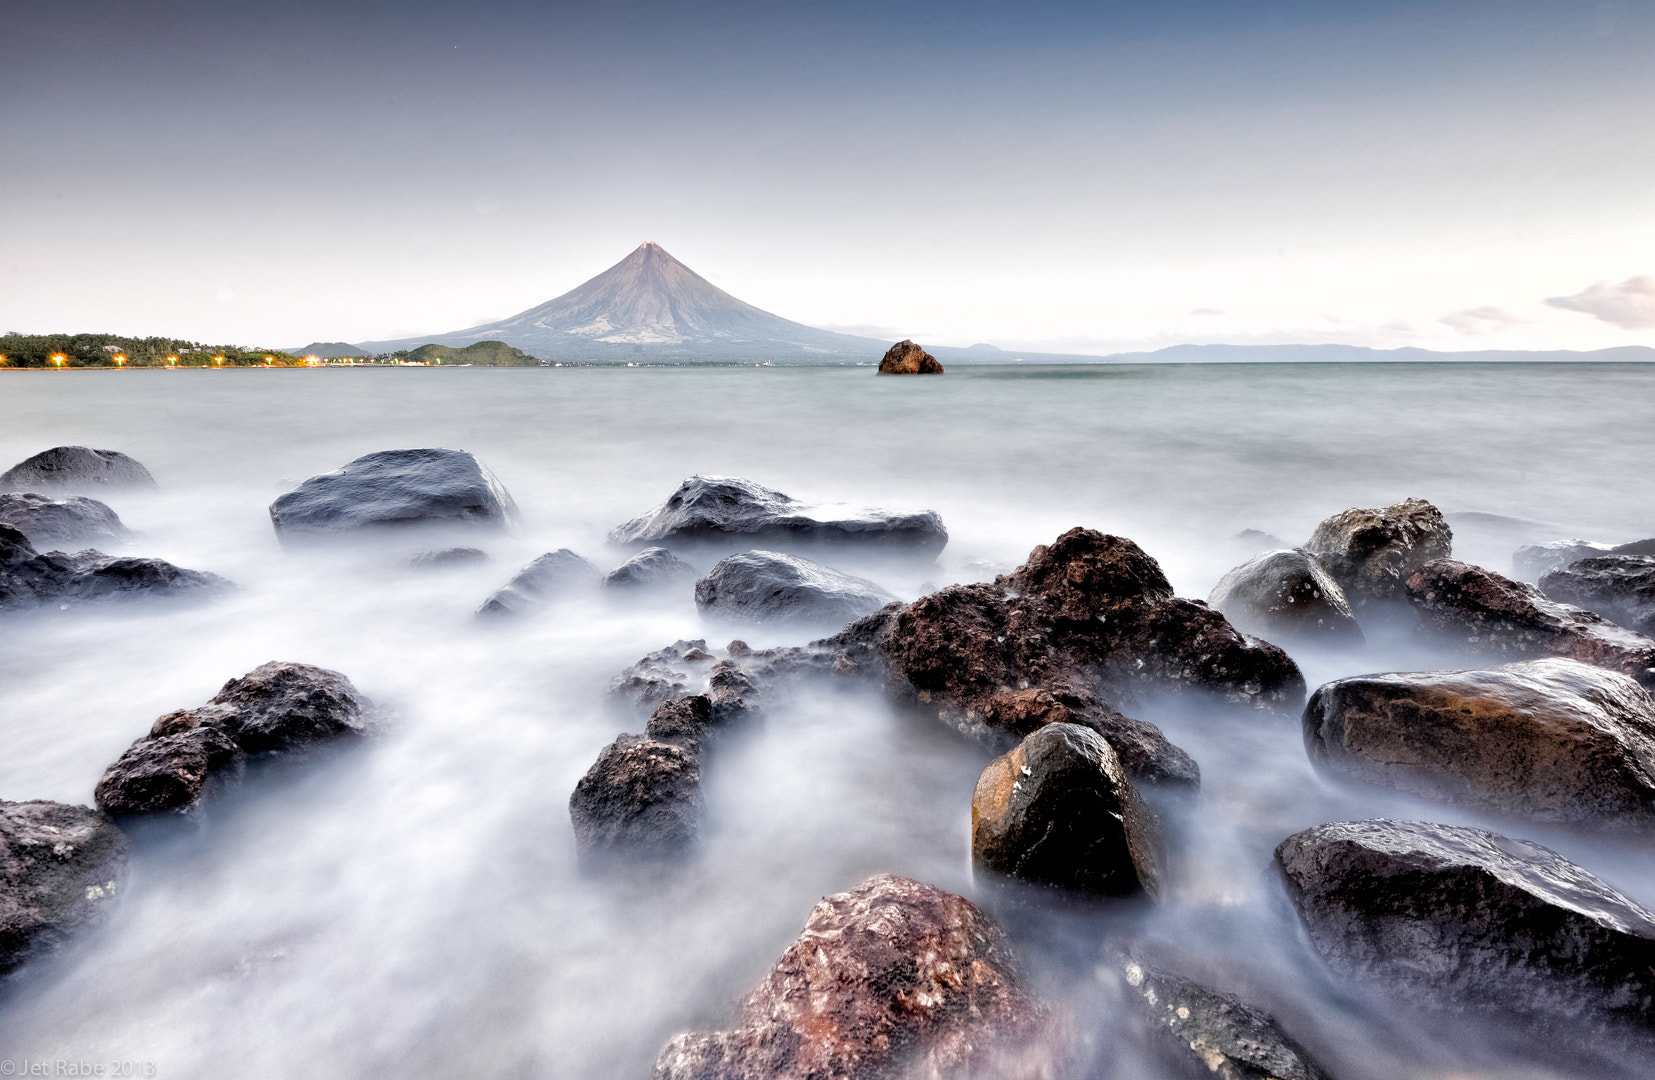 Photograph Magestic Mayon by Jet Rabe on 500px